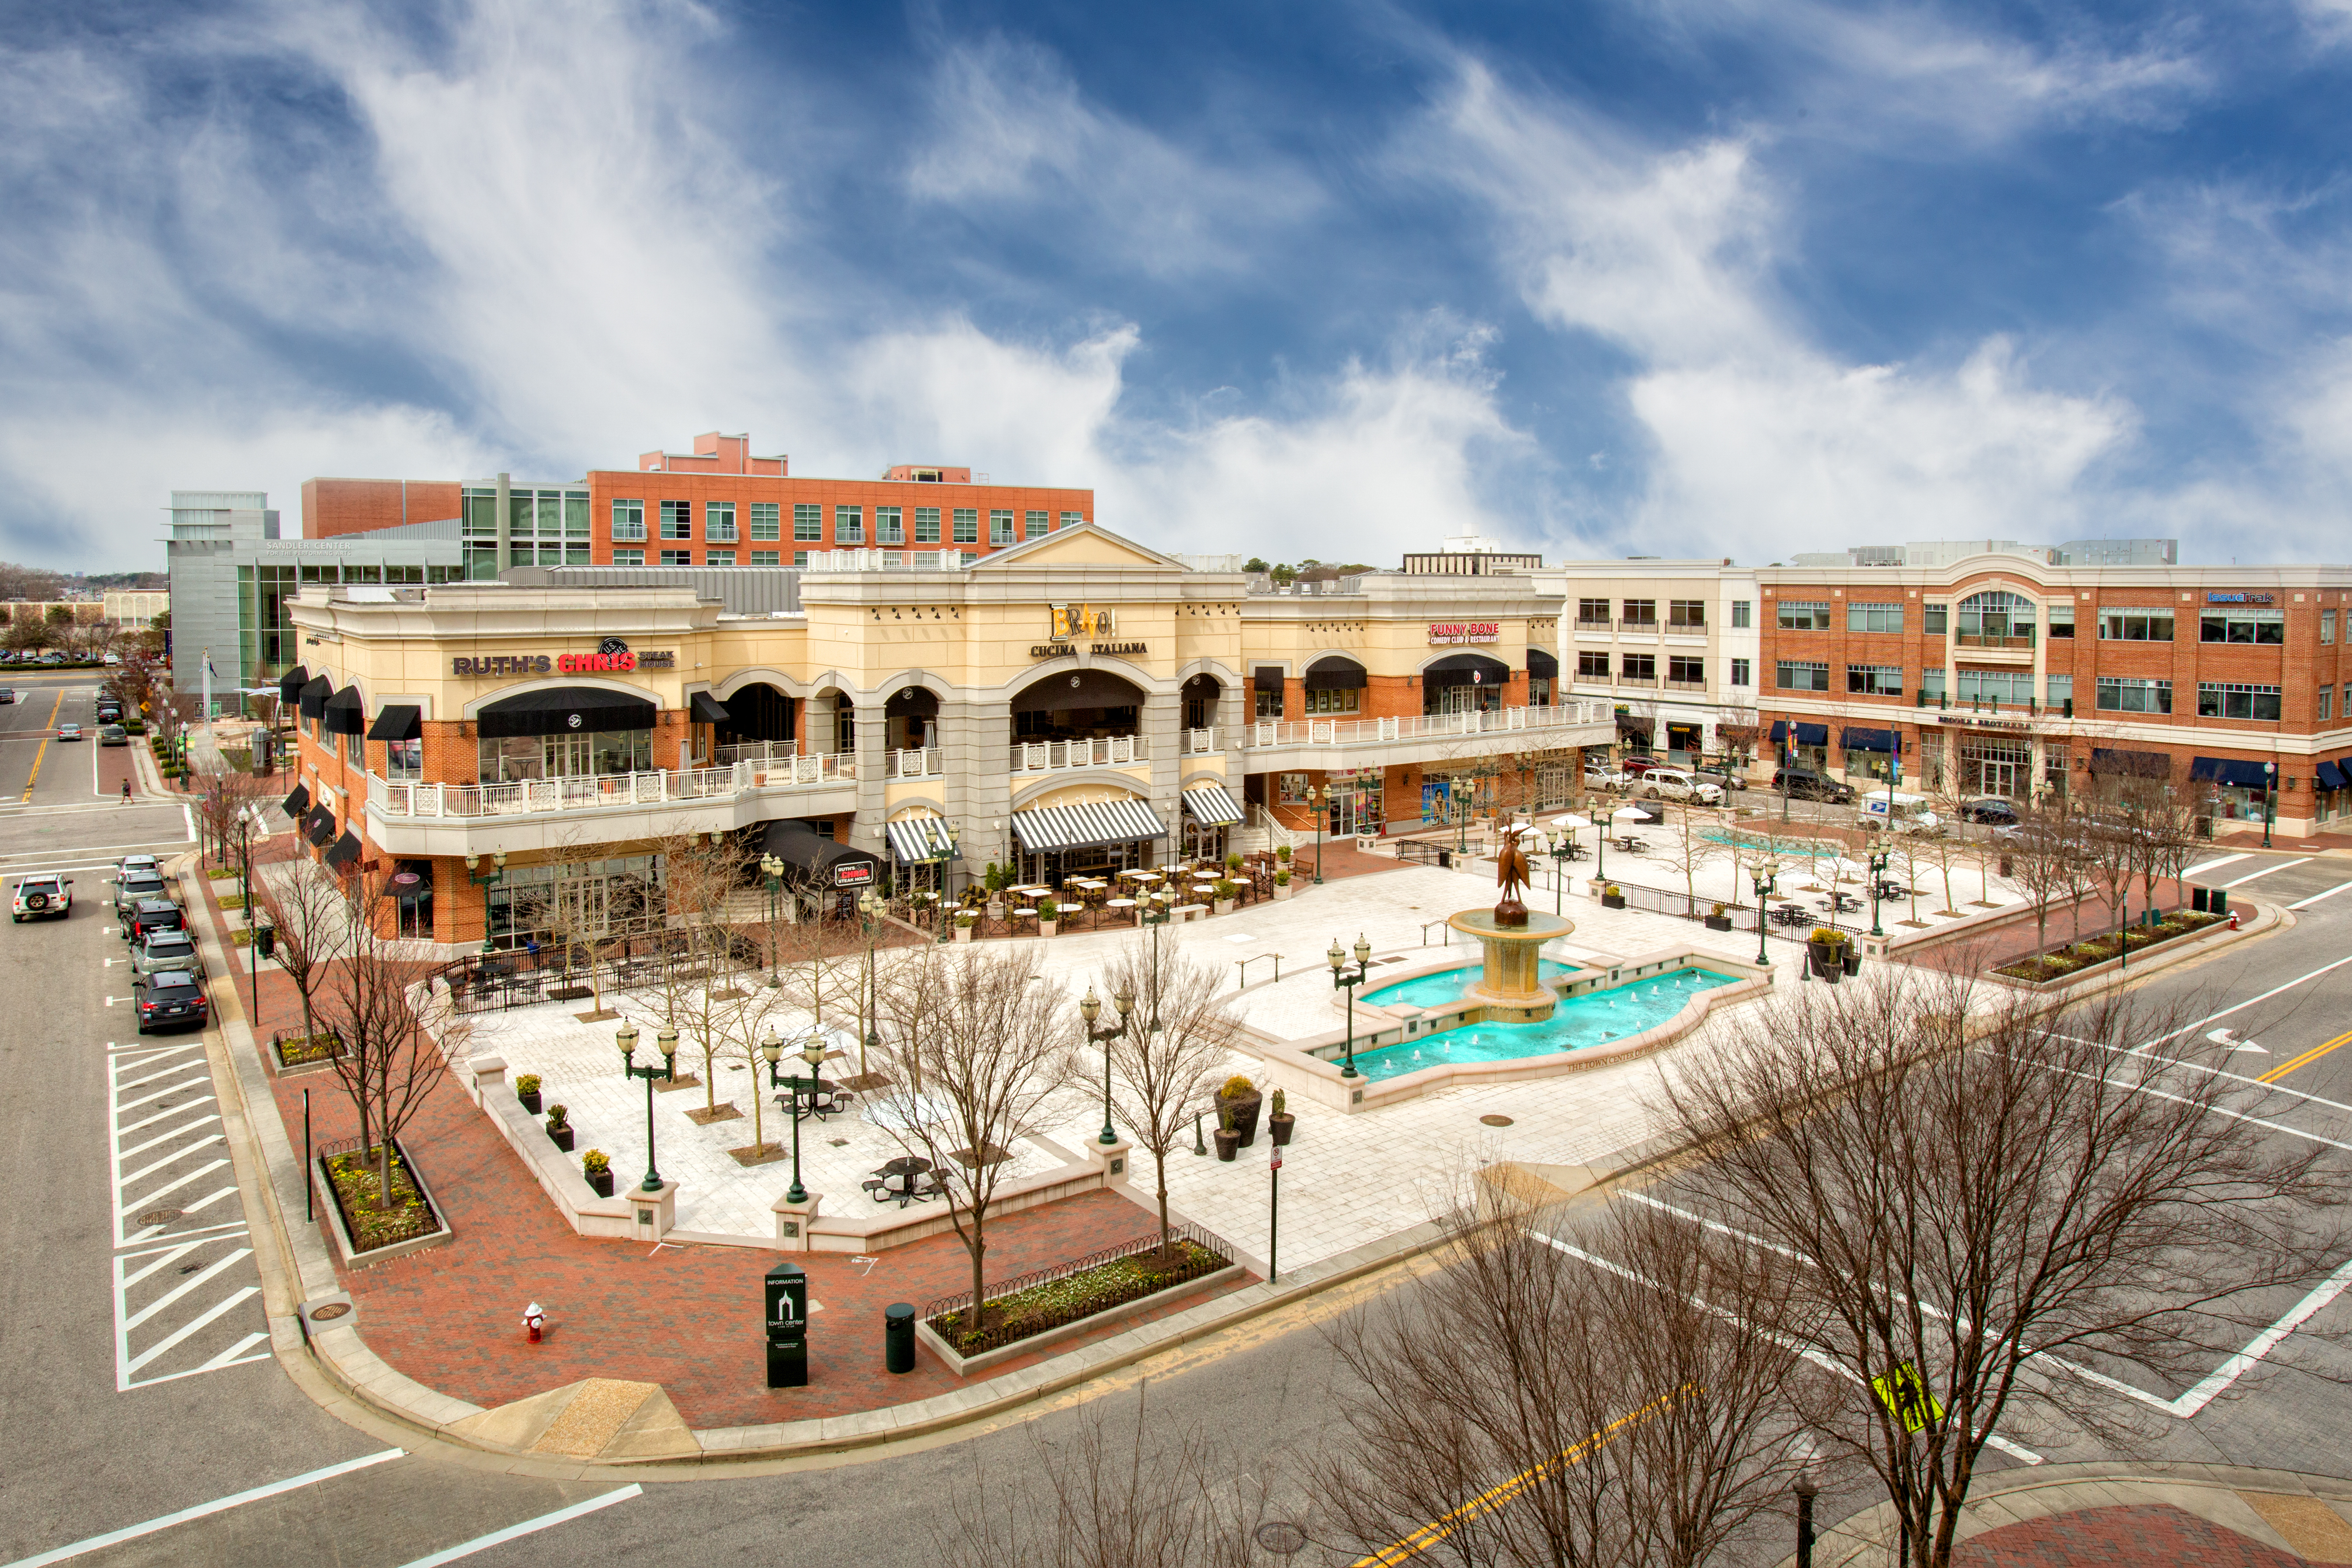 visit virginia beach va find hotels restaurants things to do - Christmas Mouse Virginia Beach